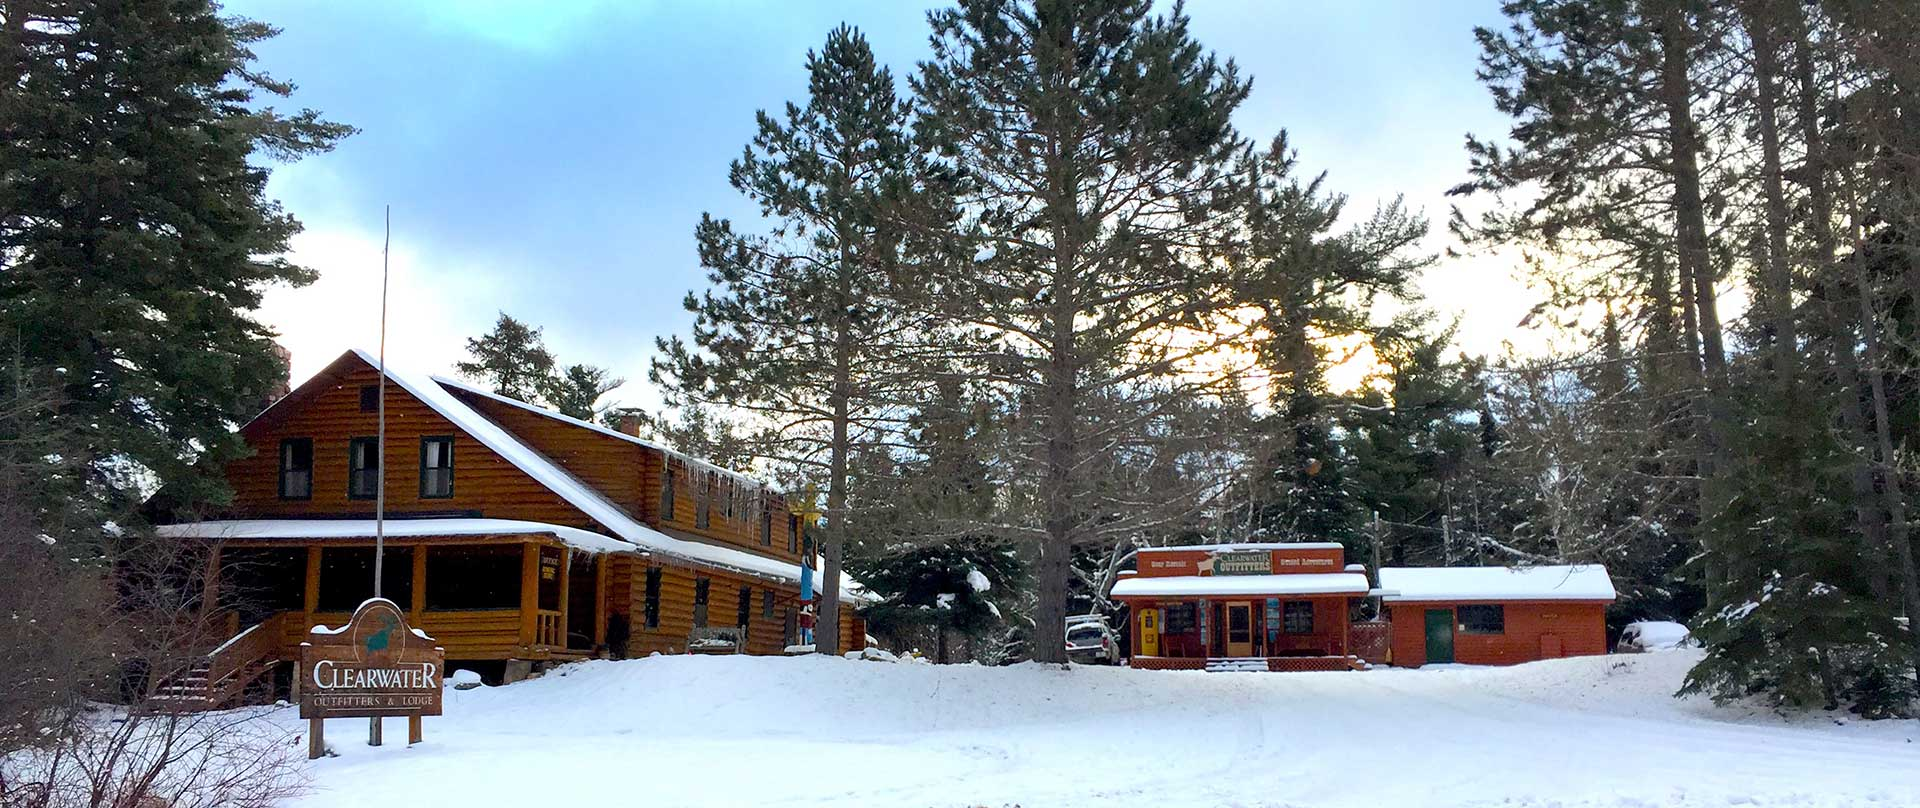 Bwca Winter Cabins Winter Cabins Lodge Clearwater